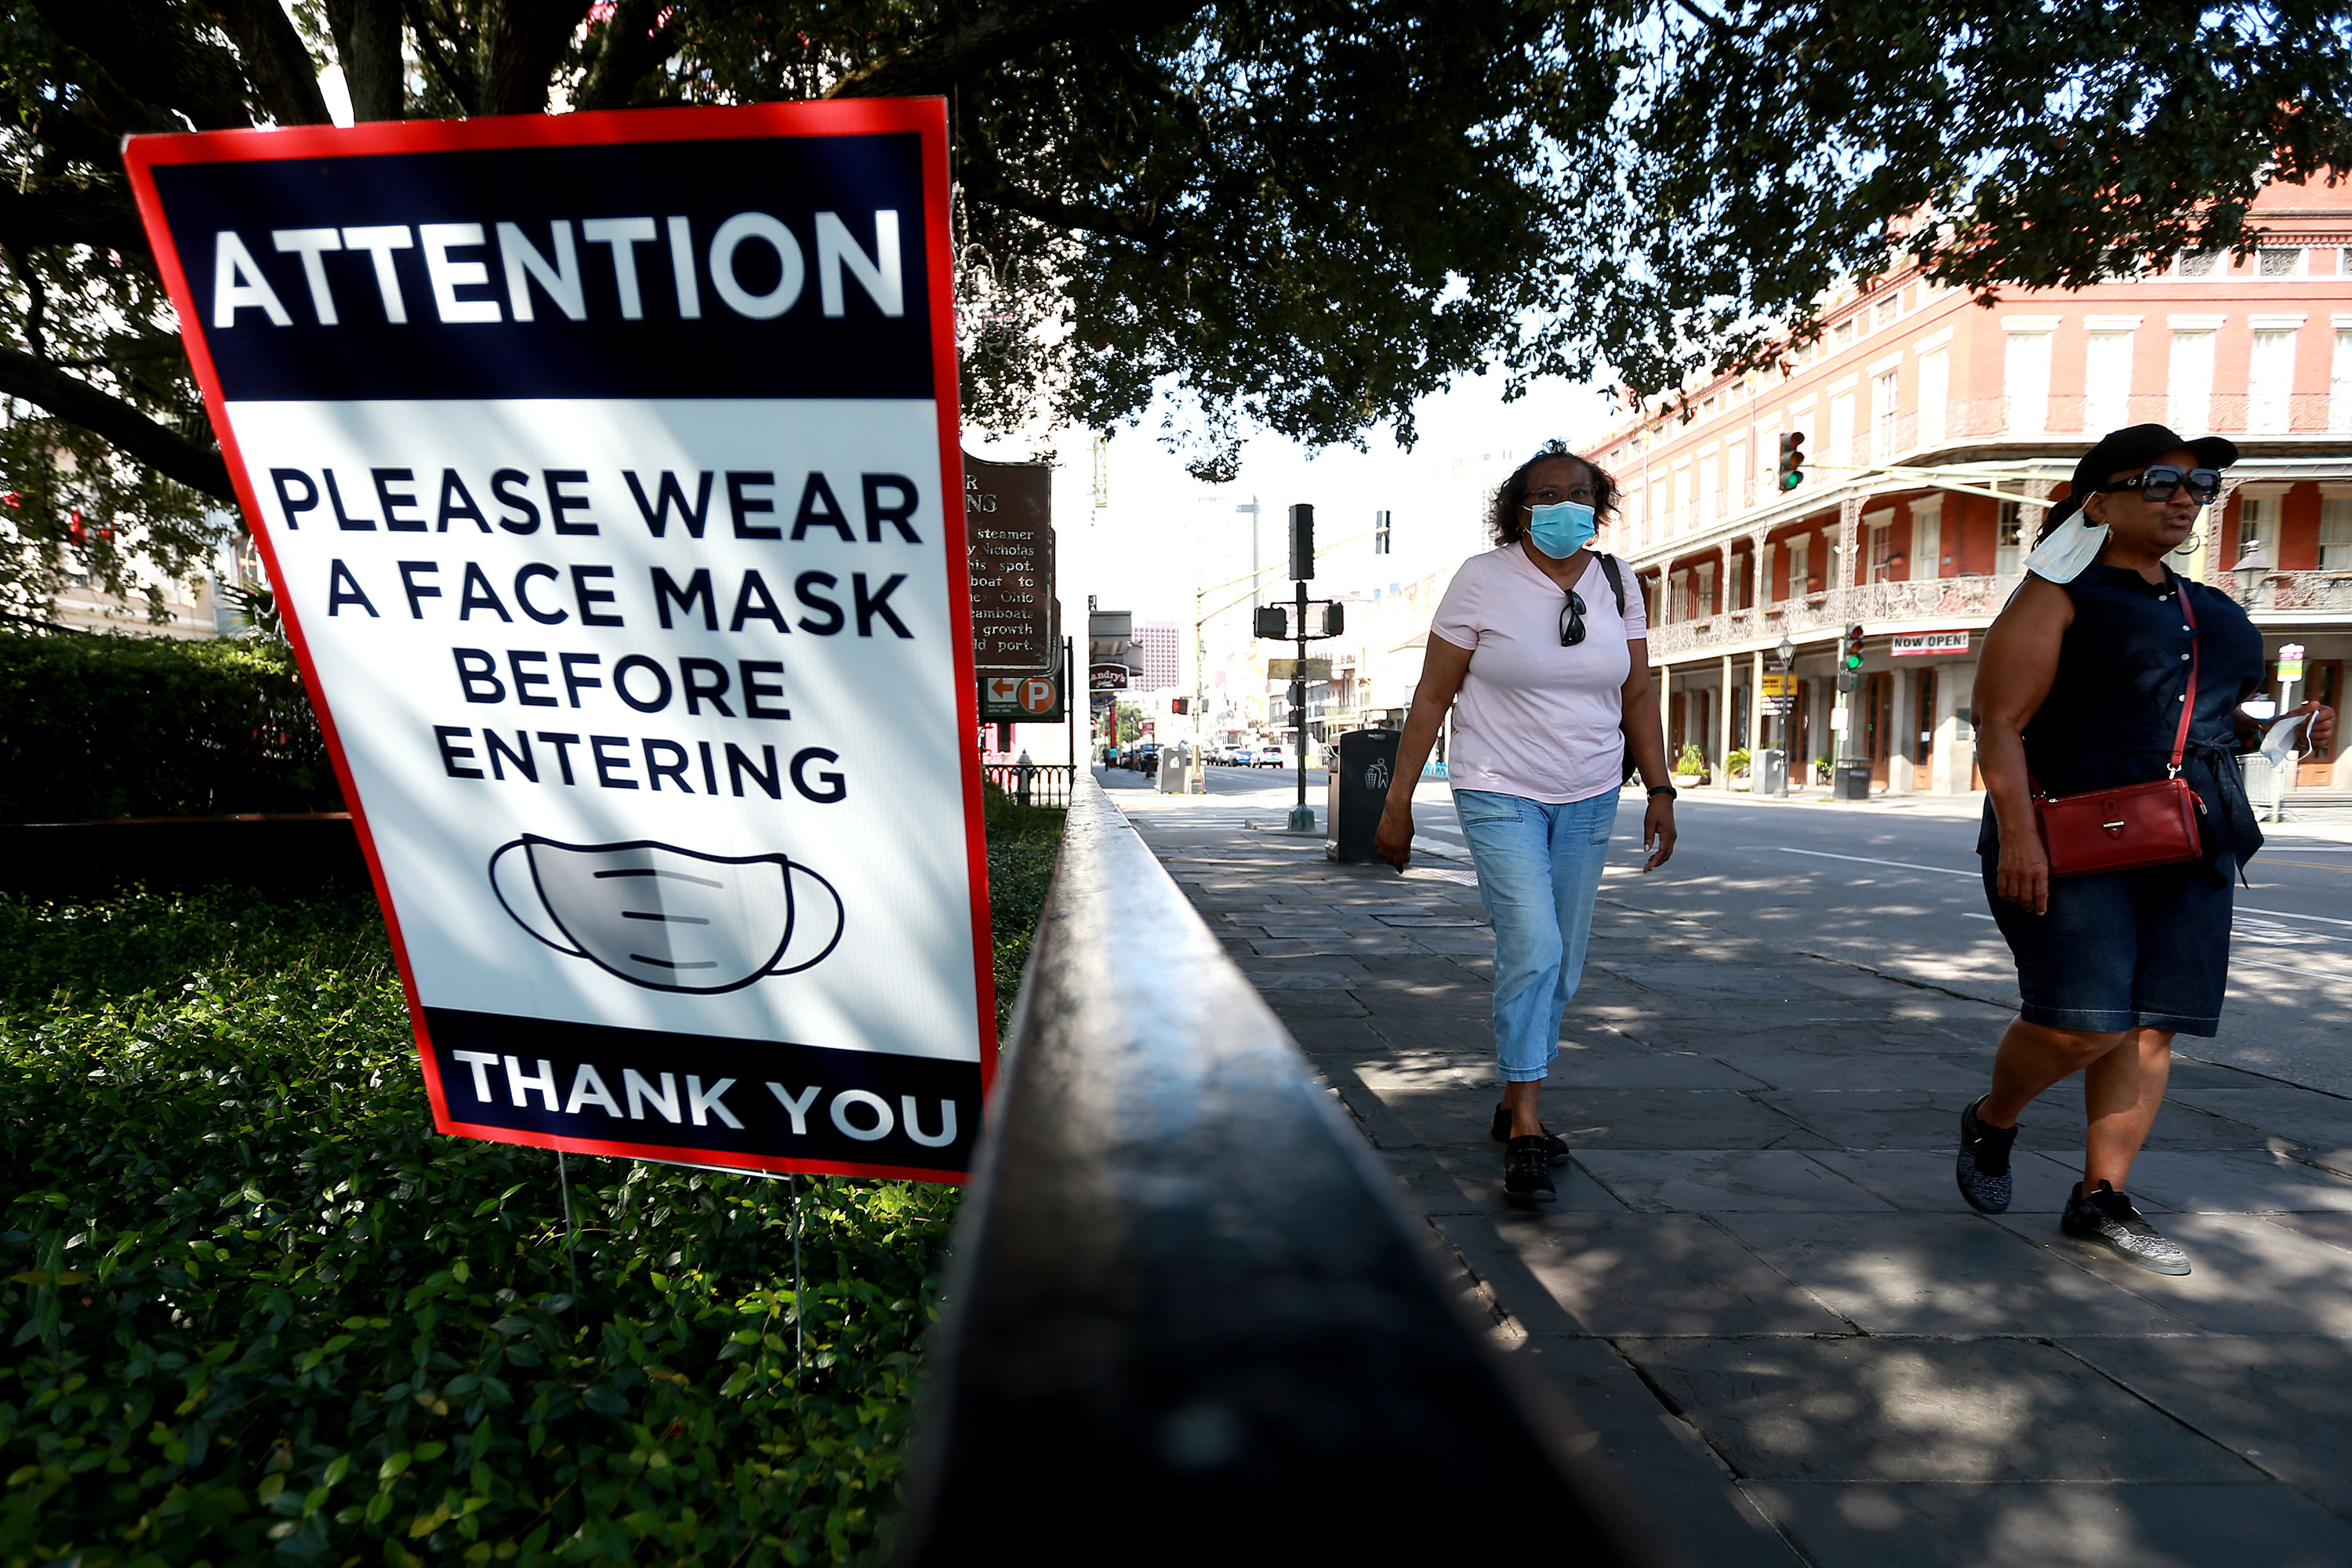 A sign in New Orleans asks people to wear a mask, in this photo taken in July.